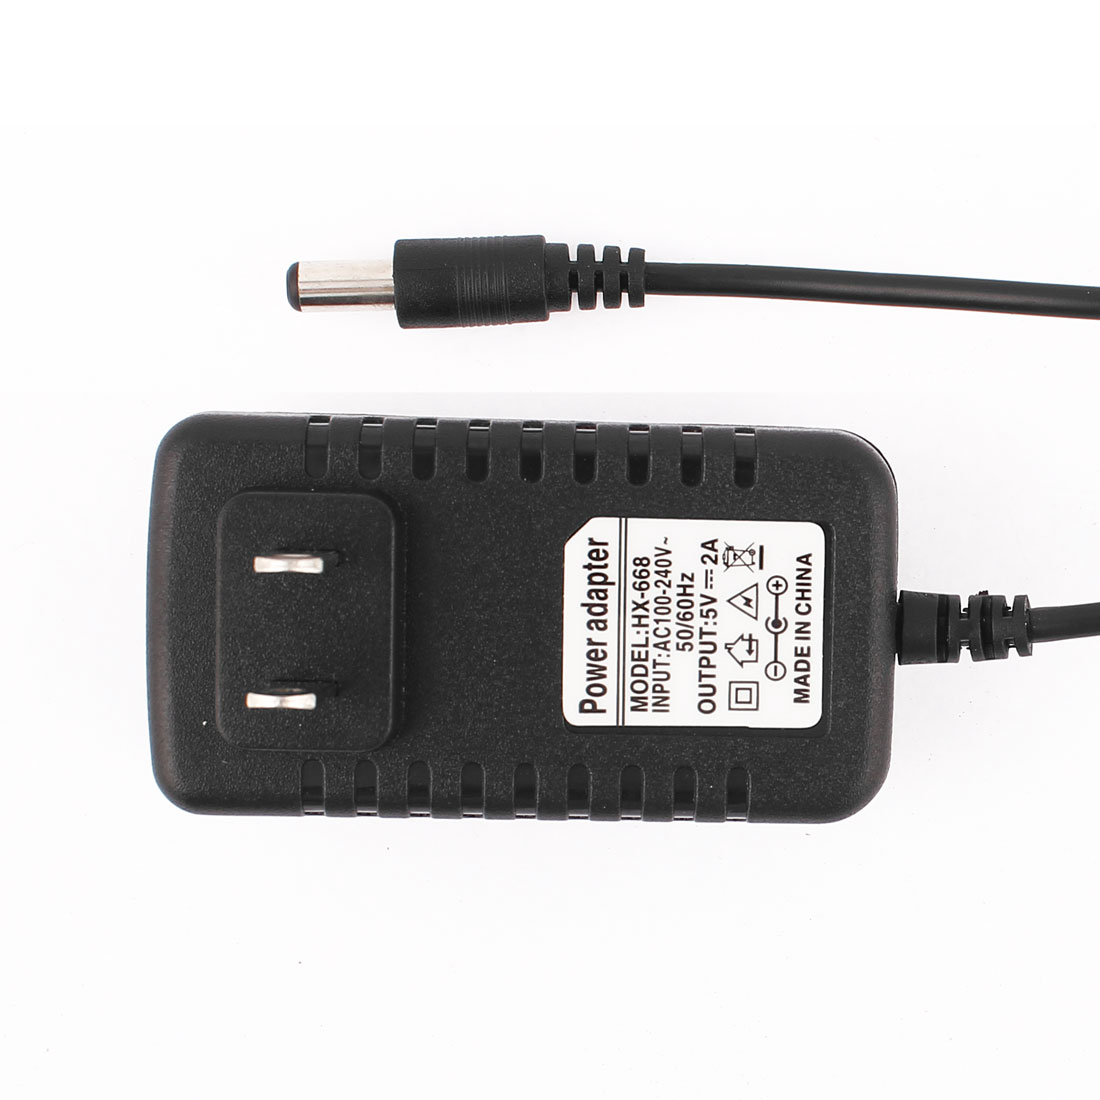 US Plug AC 100-240V to DC 5V 2A 2.1 x 5.5mm Power Supply Adapter Converter Wall Charger